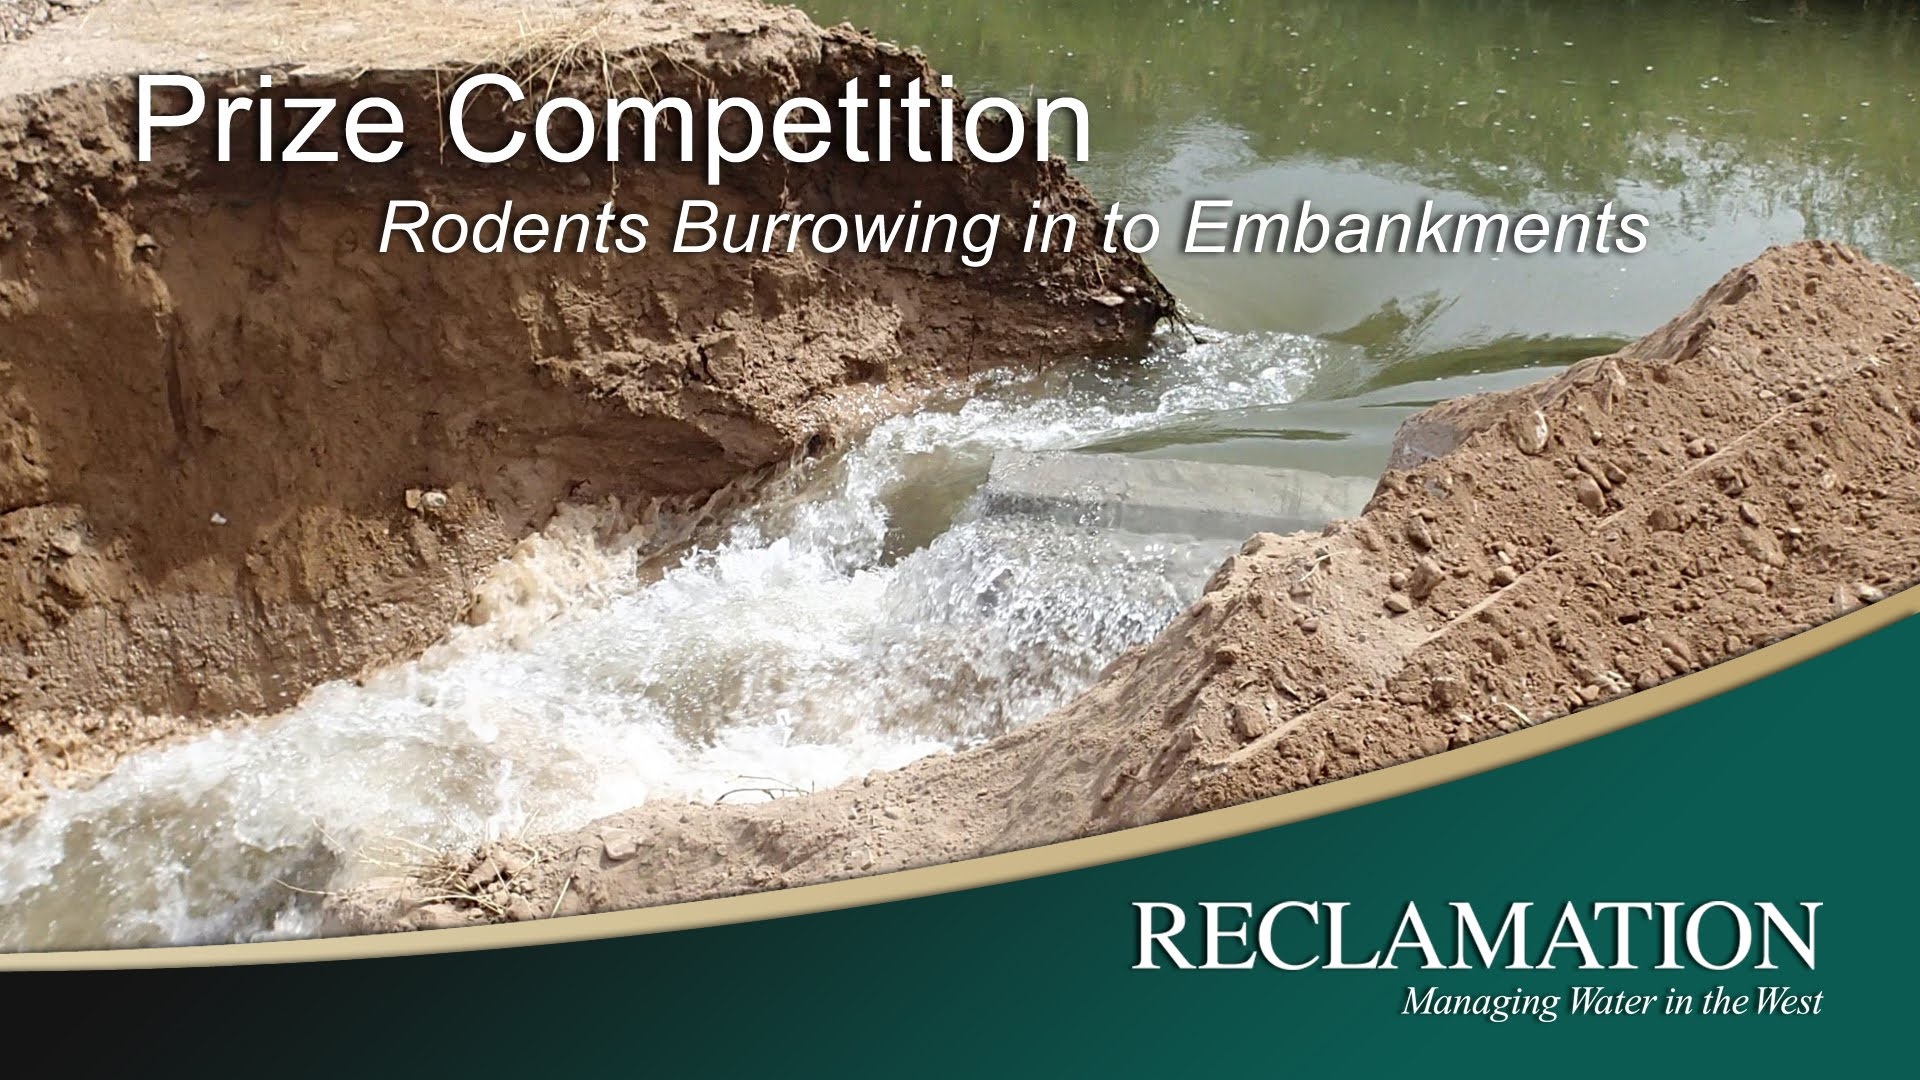 Burrrowing Rodent Prize Competition